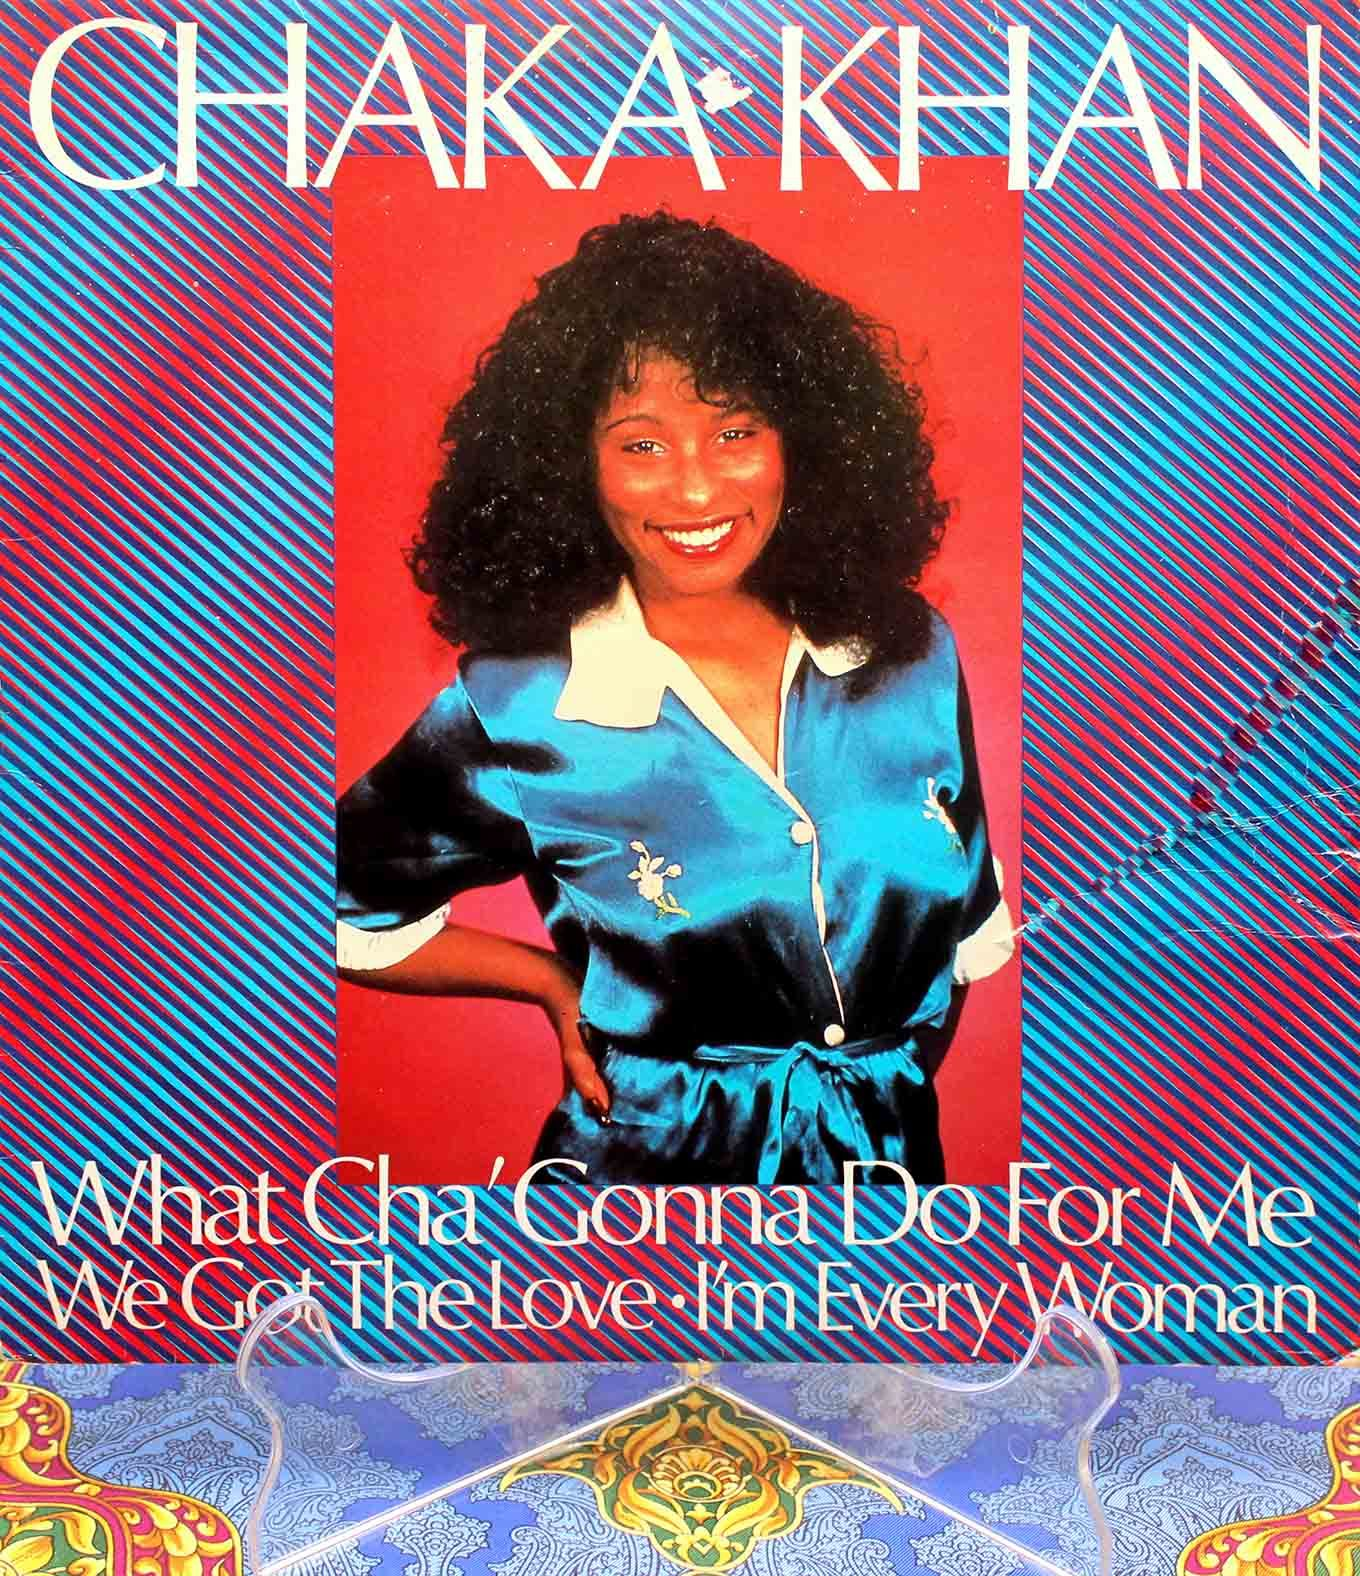 Chaka Khan - What Cha Gonna Do For Me 01